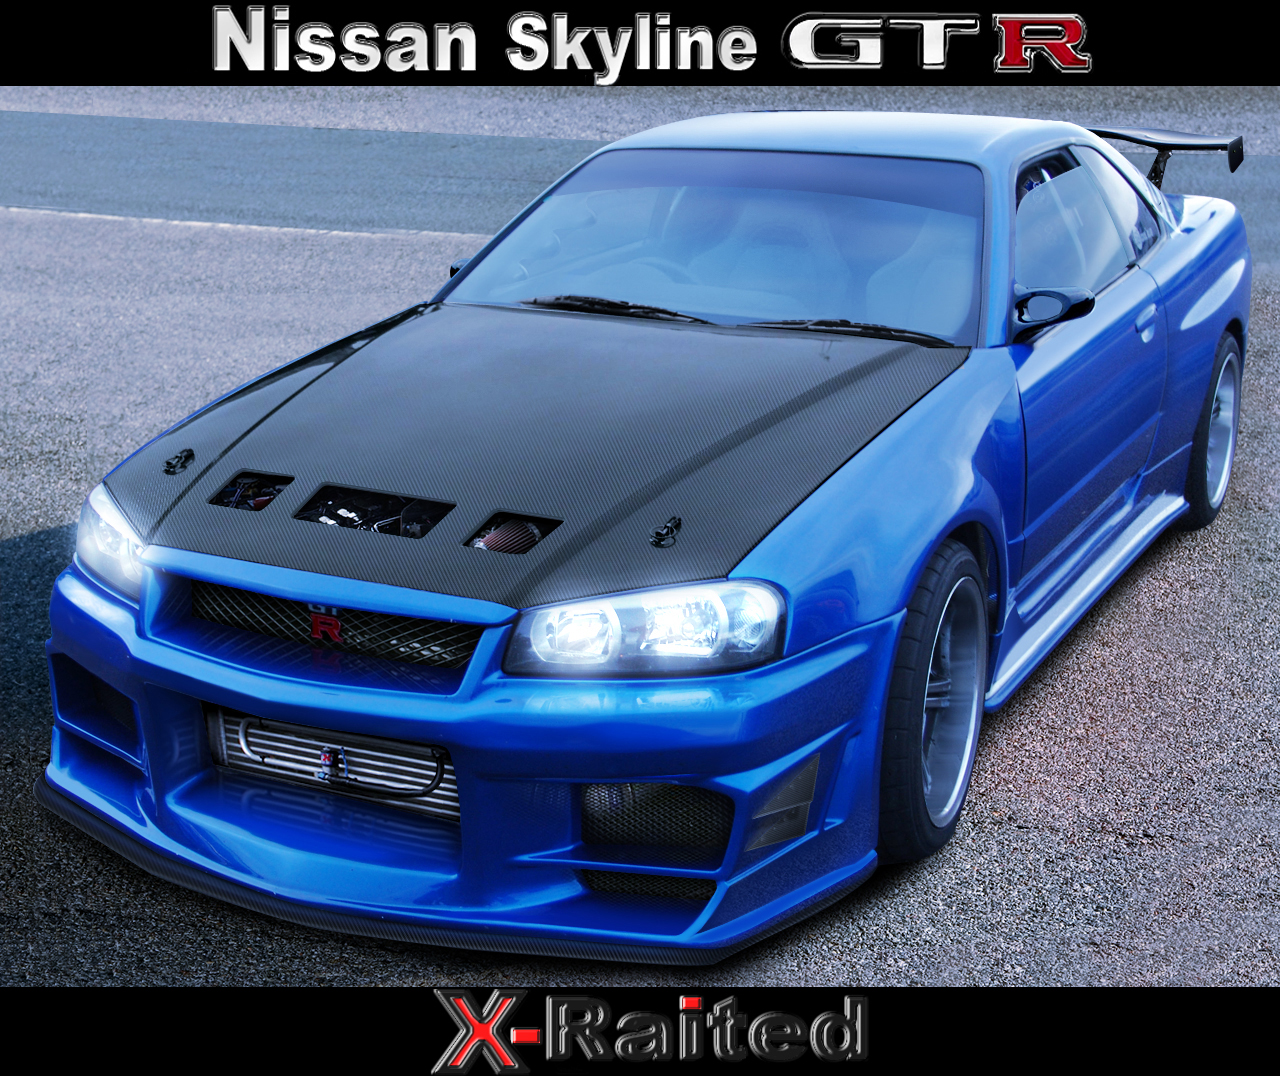 This is a Nissan Skyline GT-R top conditions.This is also a Japanese sports